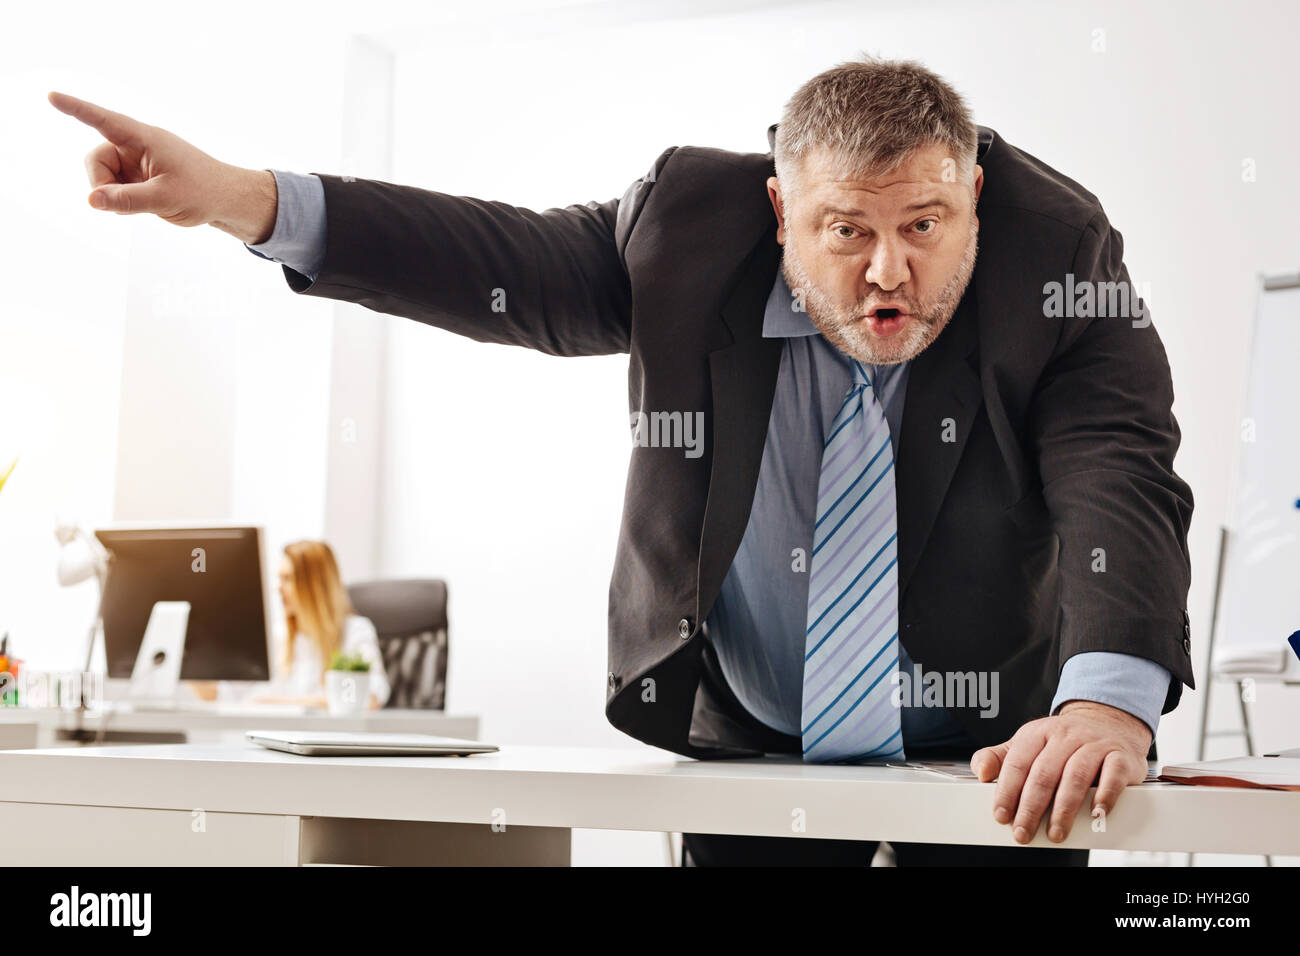 Furious manager arguing with his colleague - Stock Image